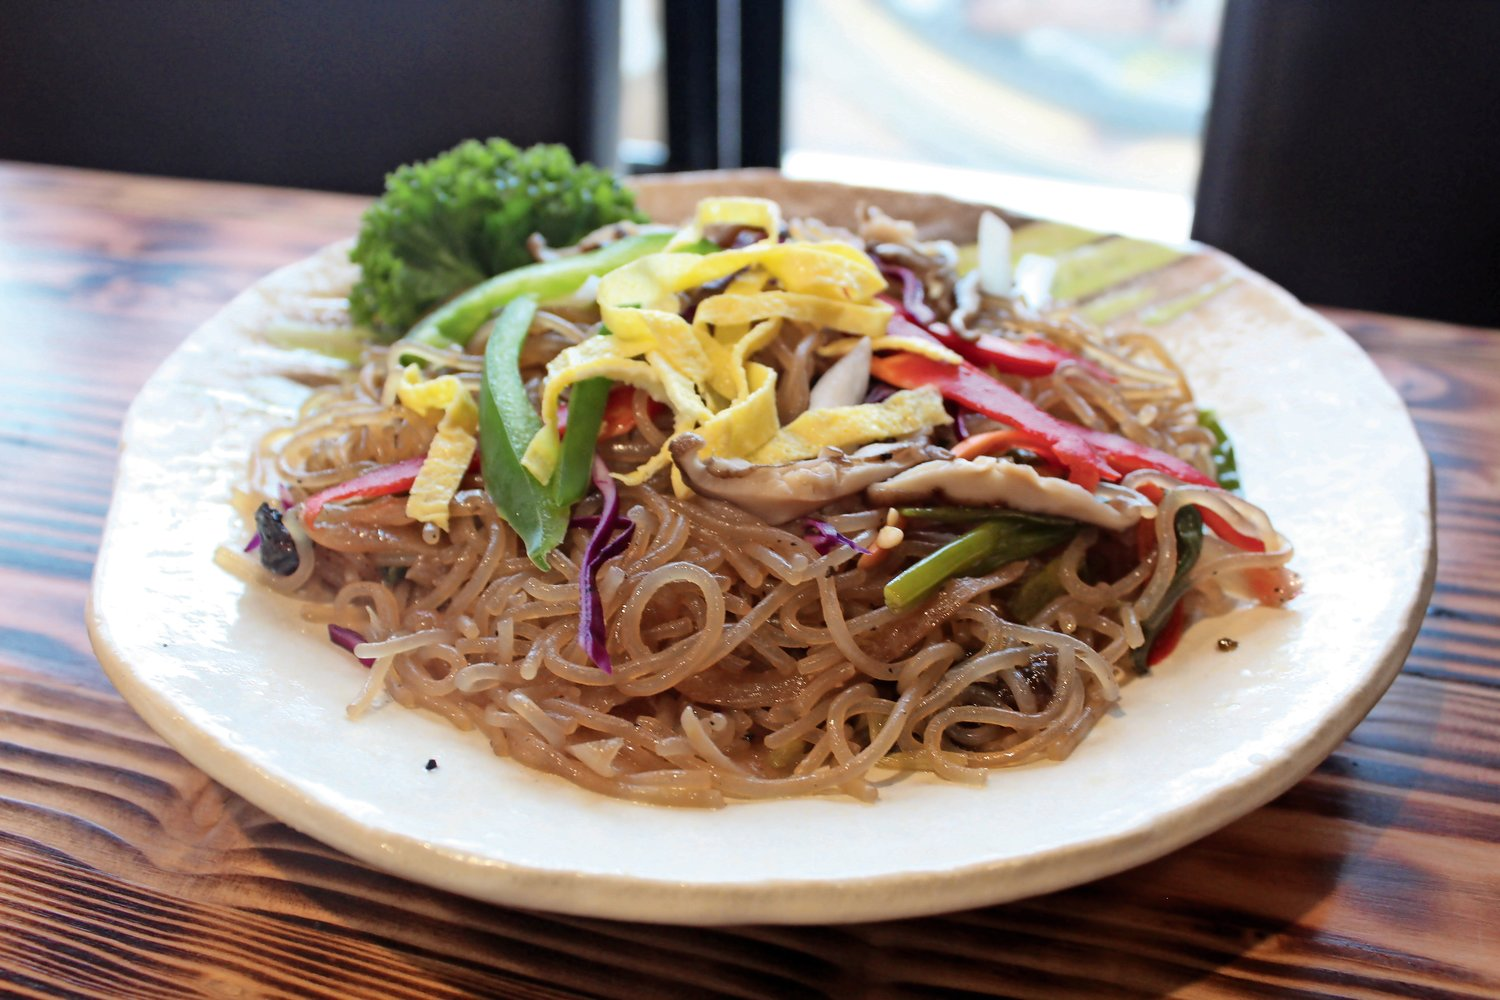 Fuji Seoul's iteration of japchae, a popular Korean dish, features sweet and savory stir-fried glass noodles and vegetables.